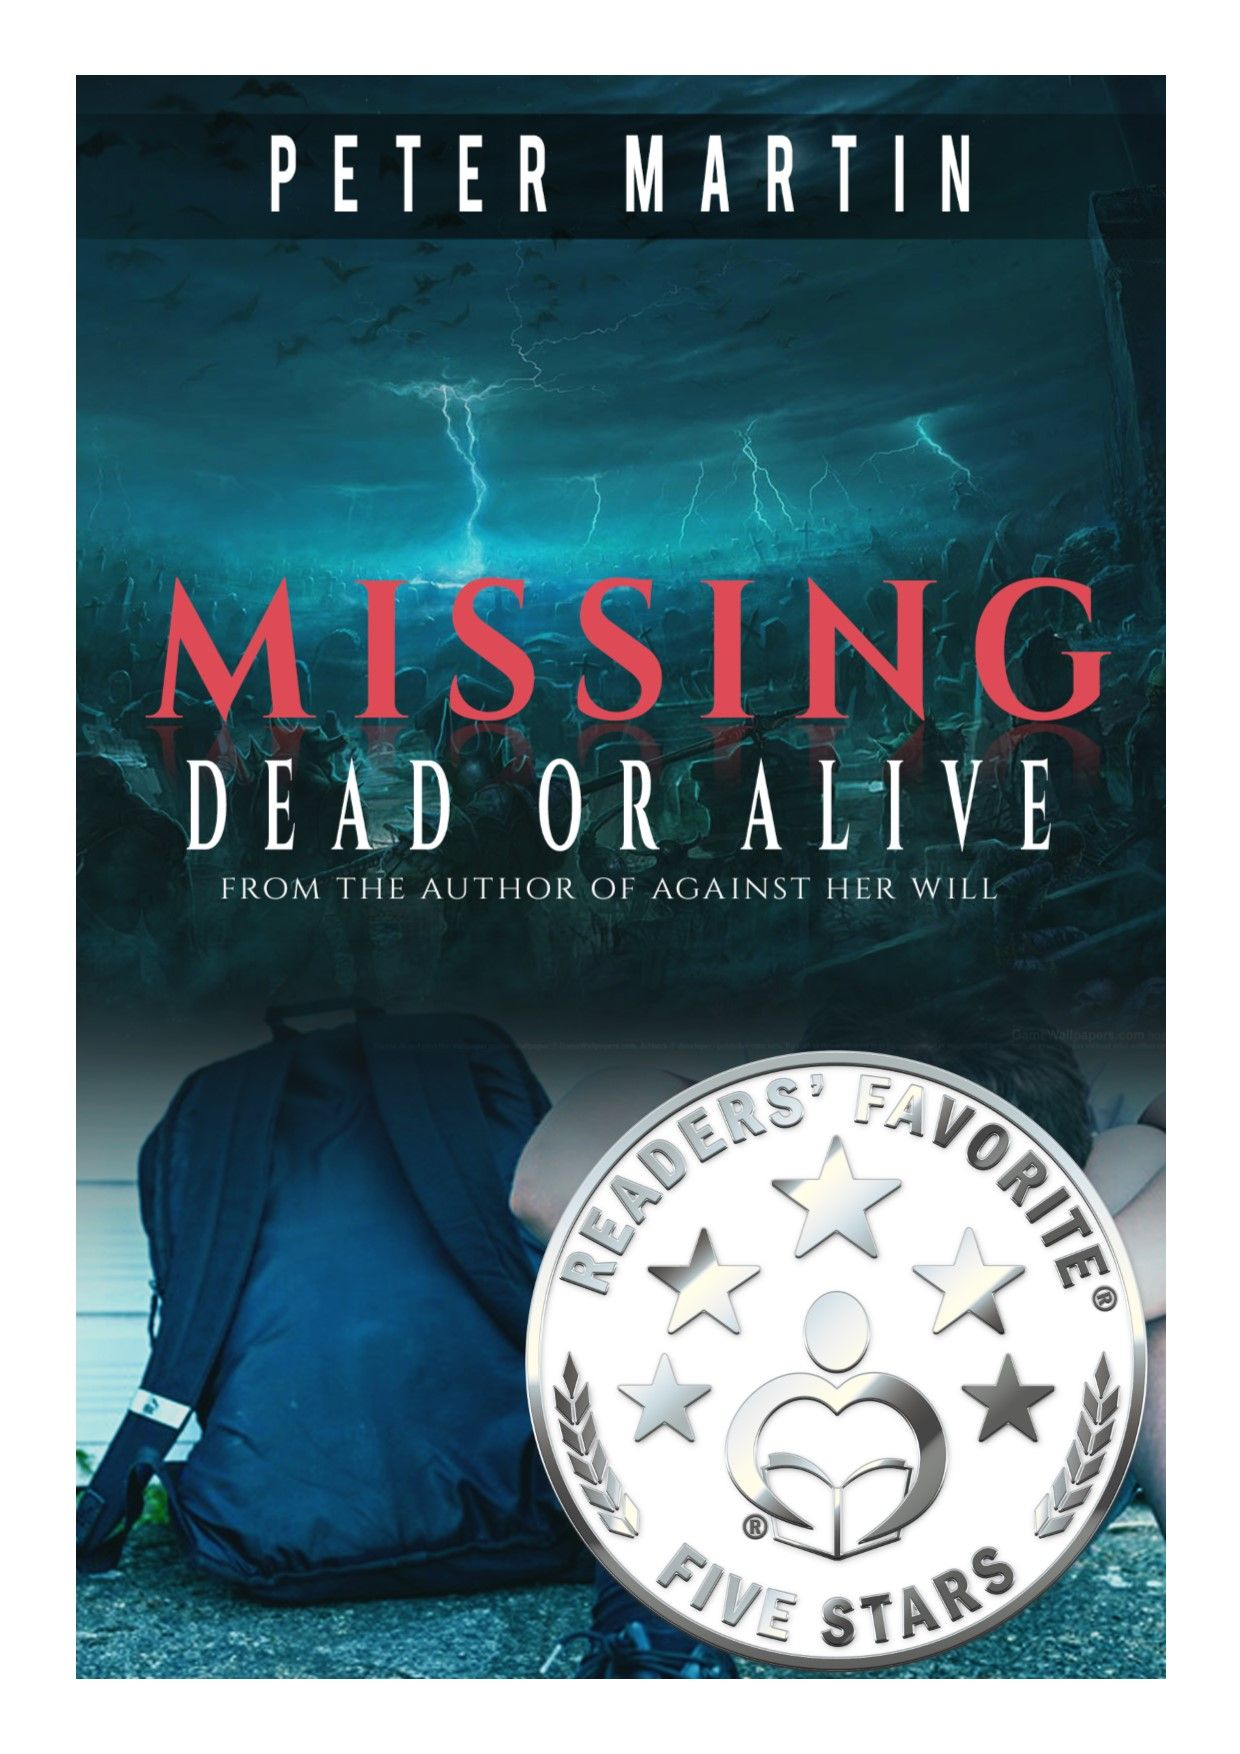 DARK MISSING DEAD OR ALIVE P MARTIN Googl